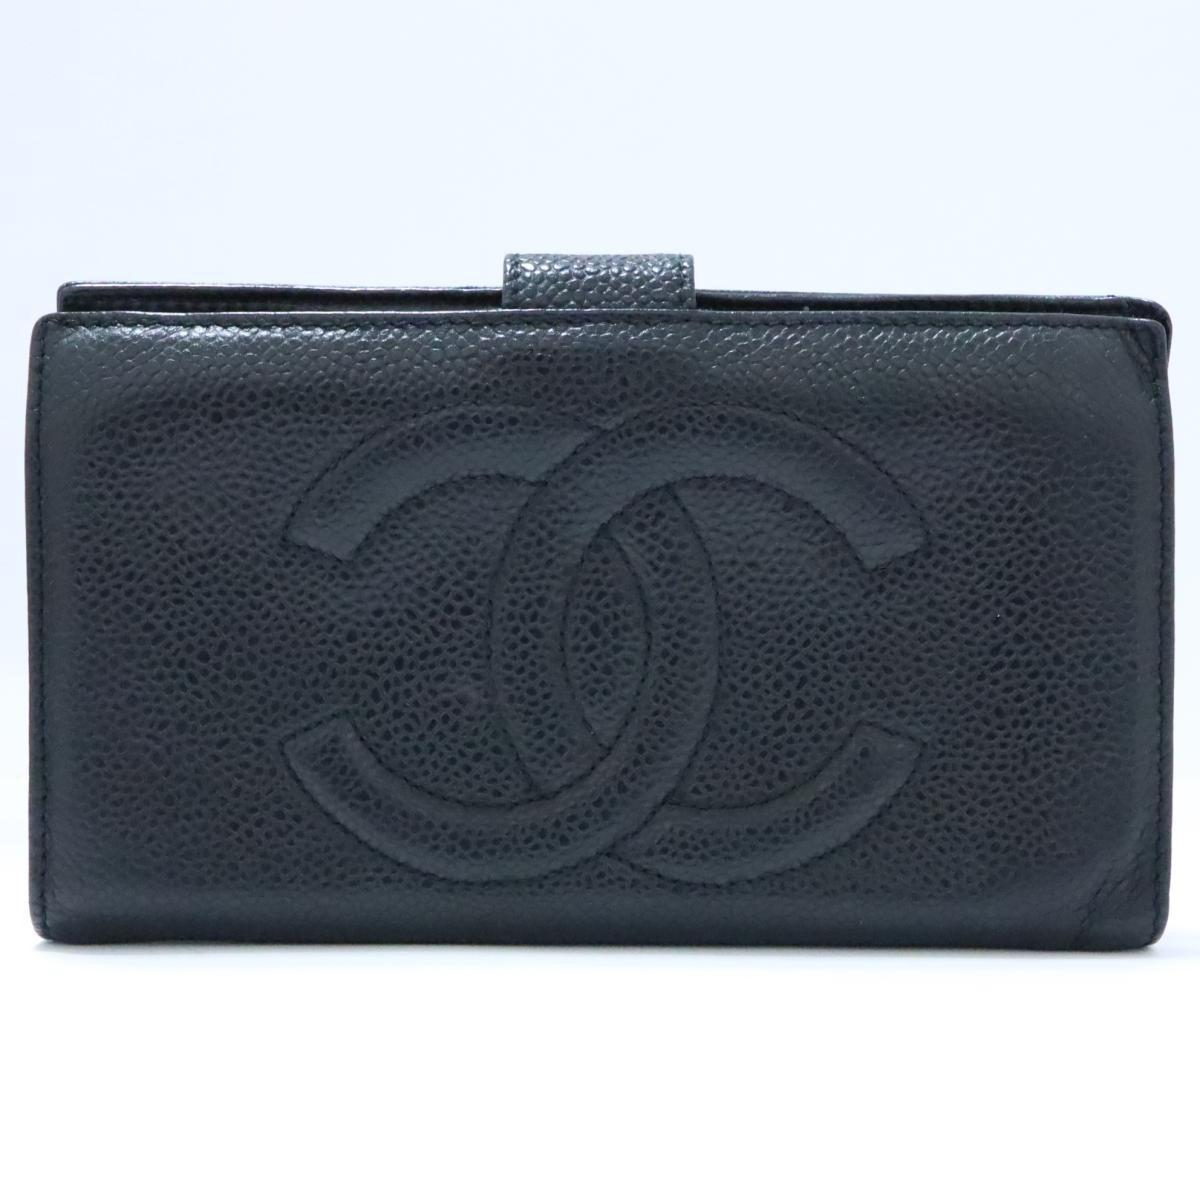 eb83dce611990f Chanel Auth Cc Bi-fold Wallet Long Purse Caviar Leather Black Ghw ...